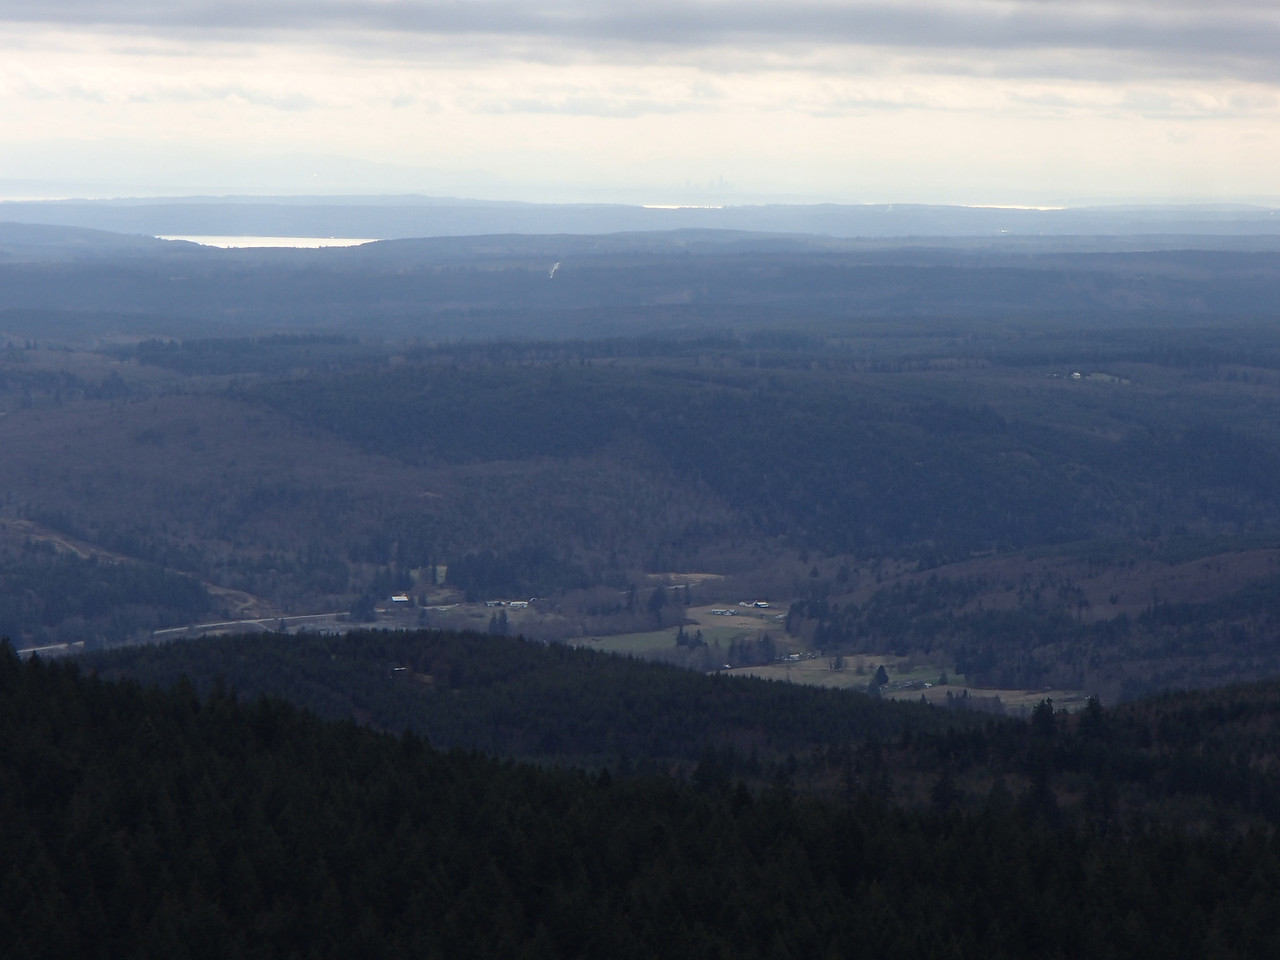 Feb 2014 Looking E from Maynard Hill with E Uncas in the foreground, Hood Canal at the top left, and the Seattle skyline in the haze at top center.